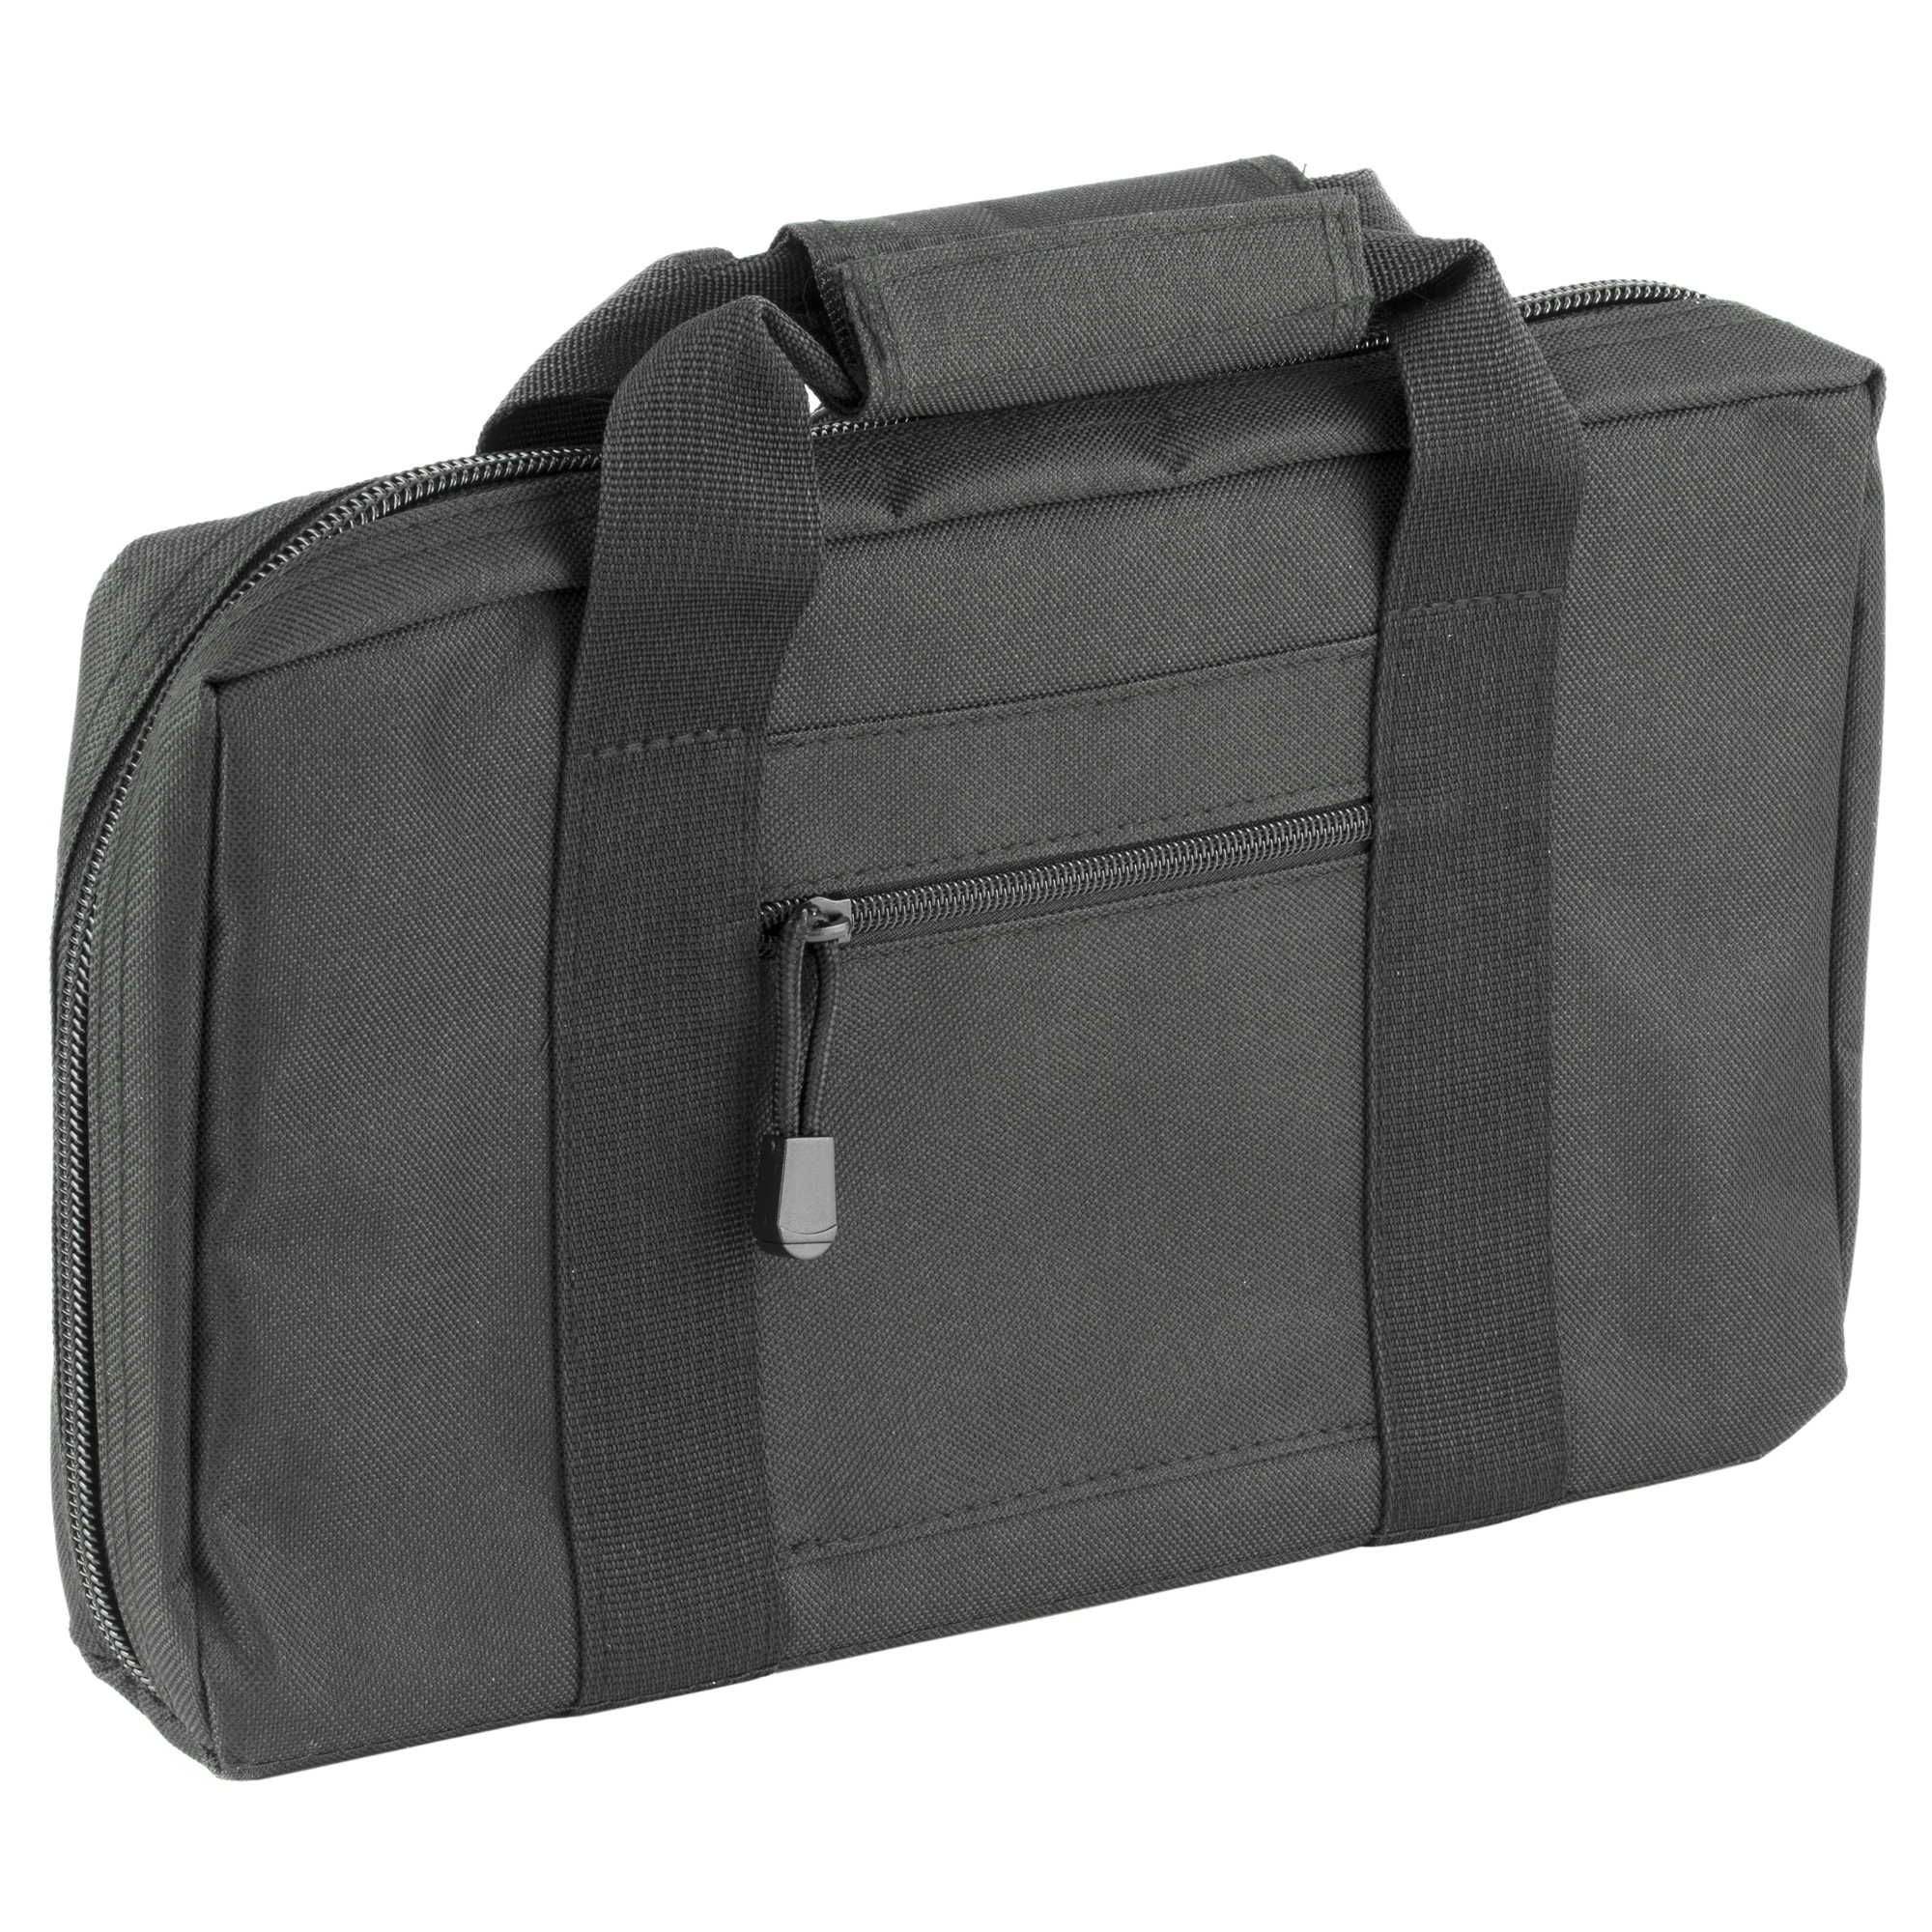 The VISM Discreet Pistol Case features 2 separate padded compartments to accommodate 1 full size handgun each. Six elastic loops accommodate up to 6 double stack magazines or 12 single stack magazines.